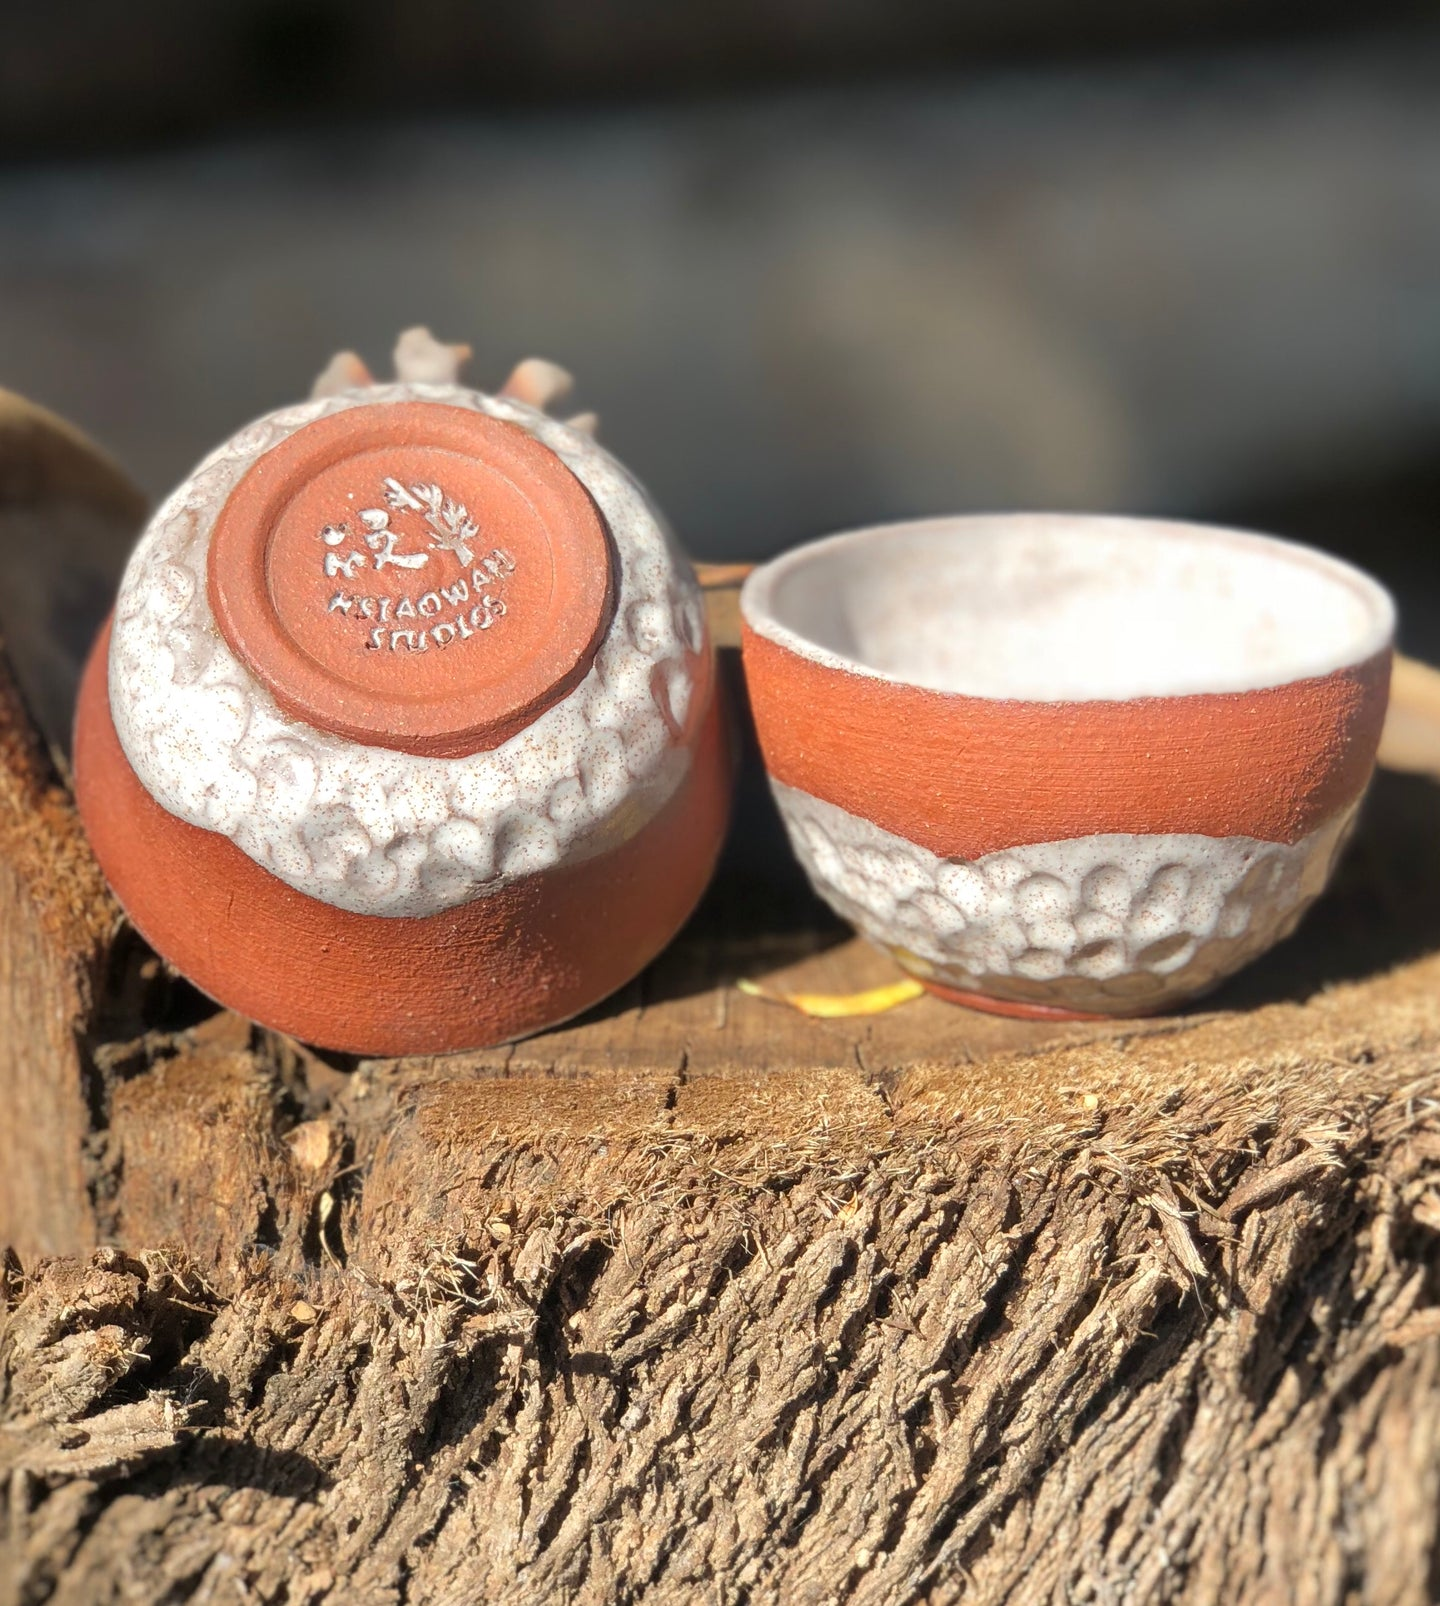 Set of 2 Sake Cups / Shot Glass / Espresso Cup / Chinese Tea cup - Hsiaowan Studios Handmade Ceramics Pottery